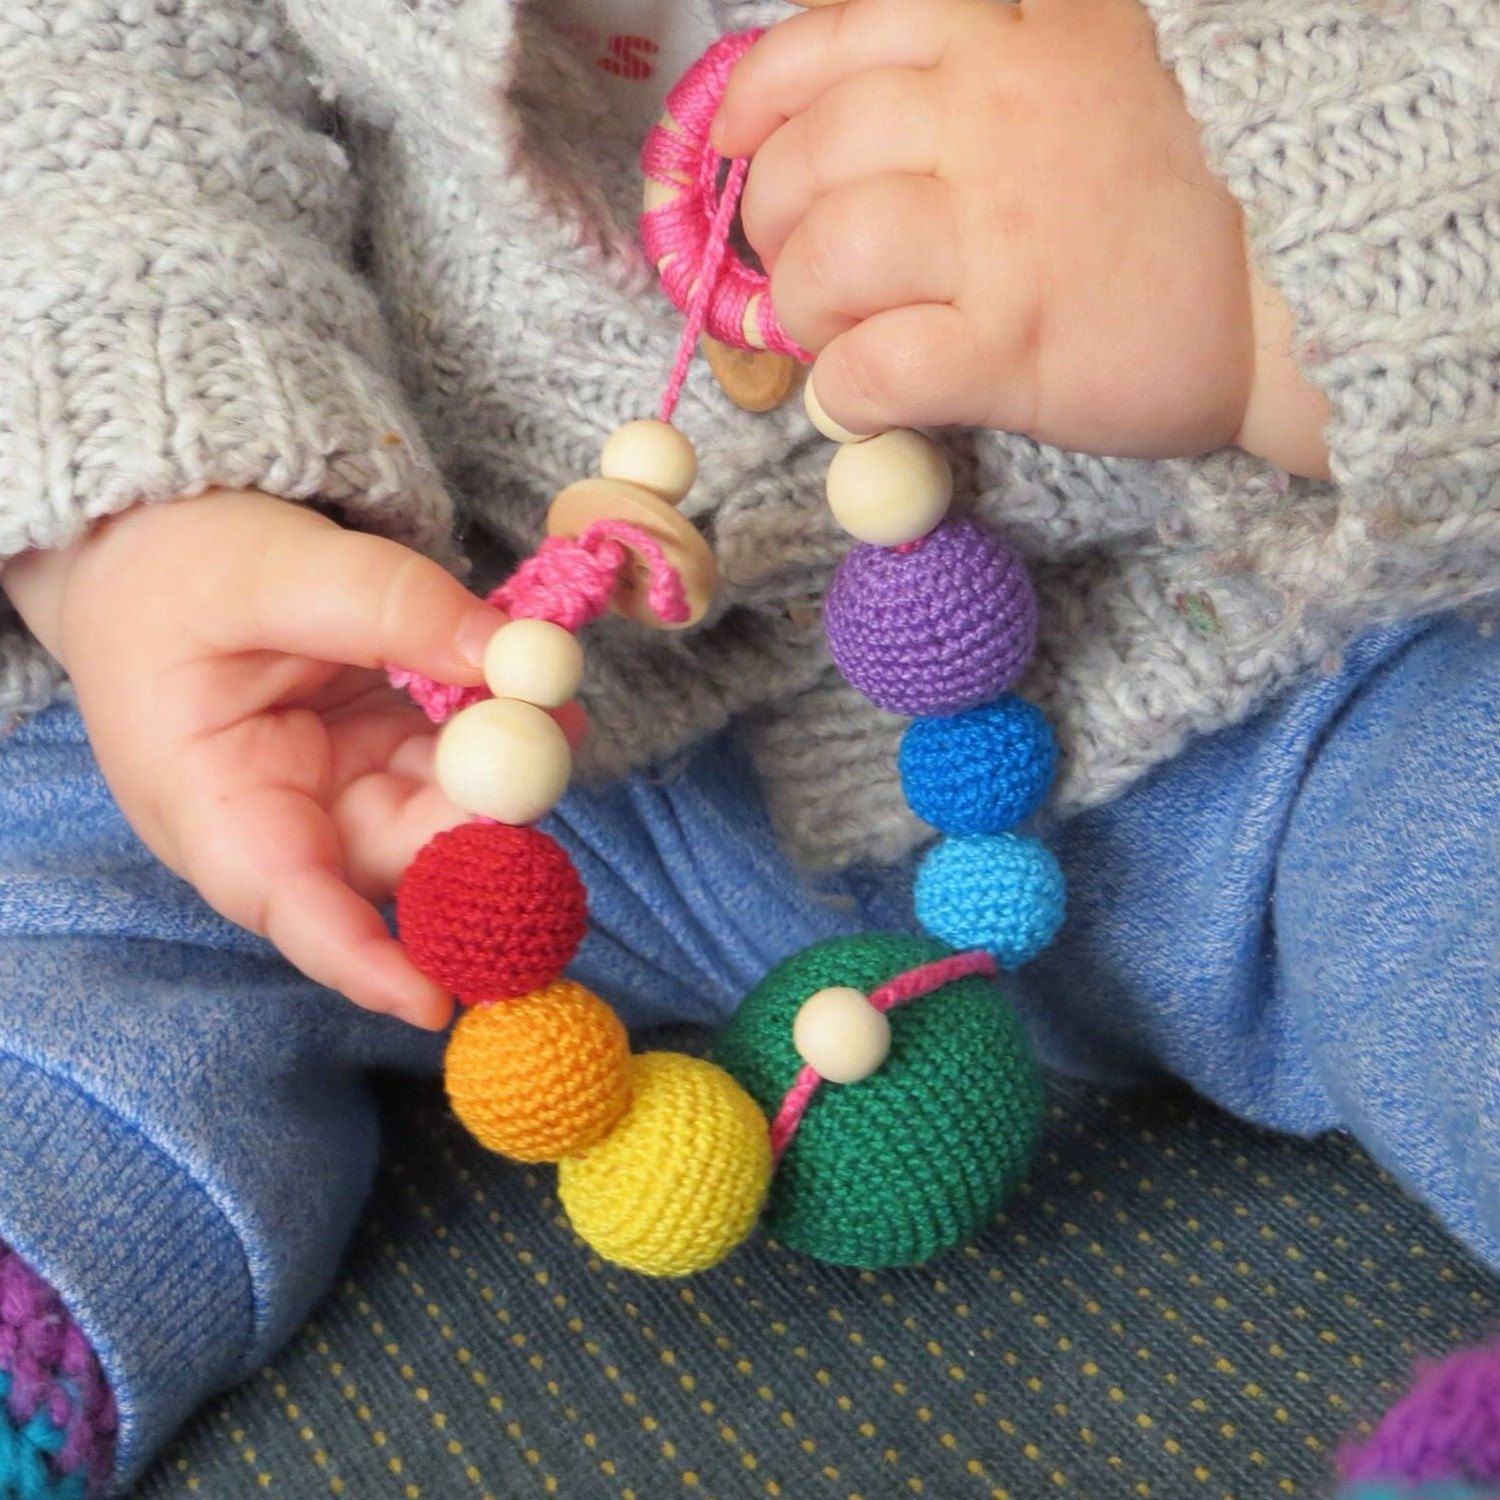 Baby Lina loves her teething toy!  100% natural, colorful and... it sounds! Perfect for your little ones!